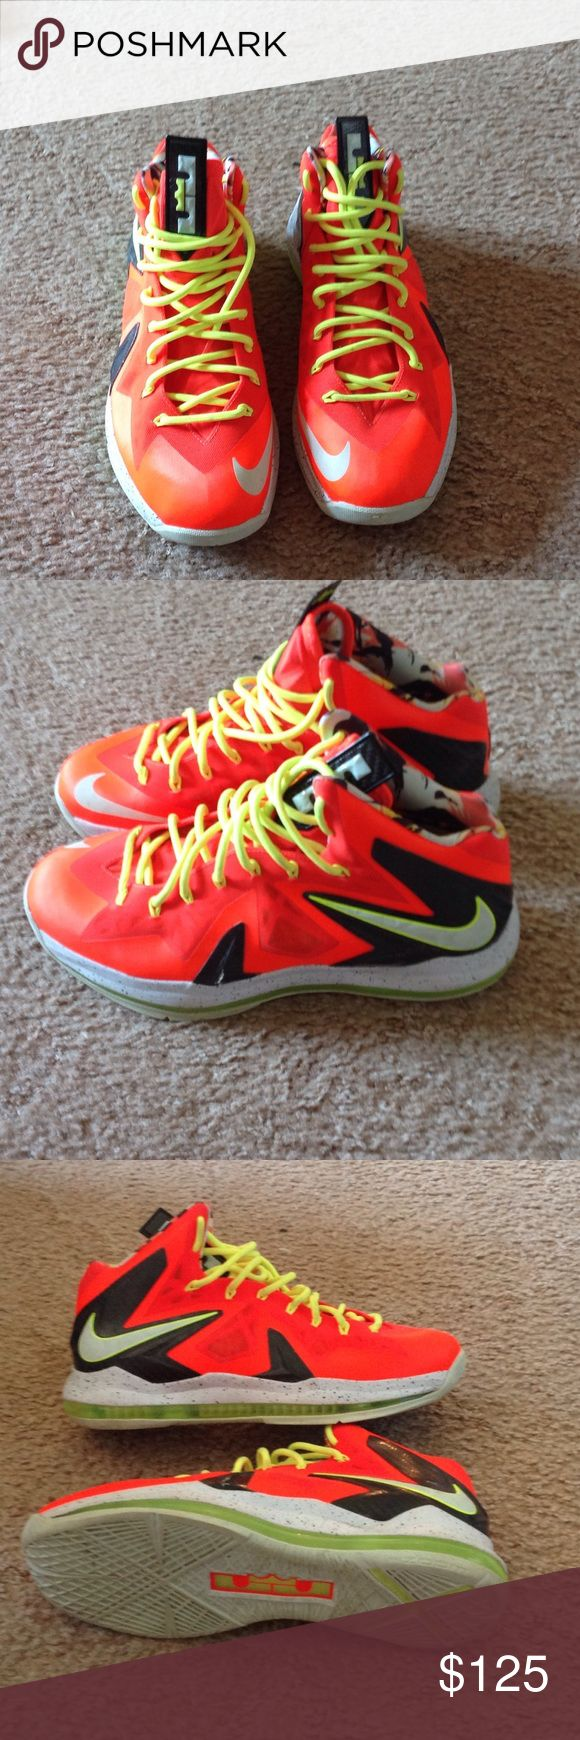 LeBron 10 x p.s. Elite Nike size 12 Like new orange LeBron sneakers from Nike, only worn a few times. Nike Shoes Sneakers